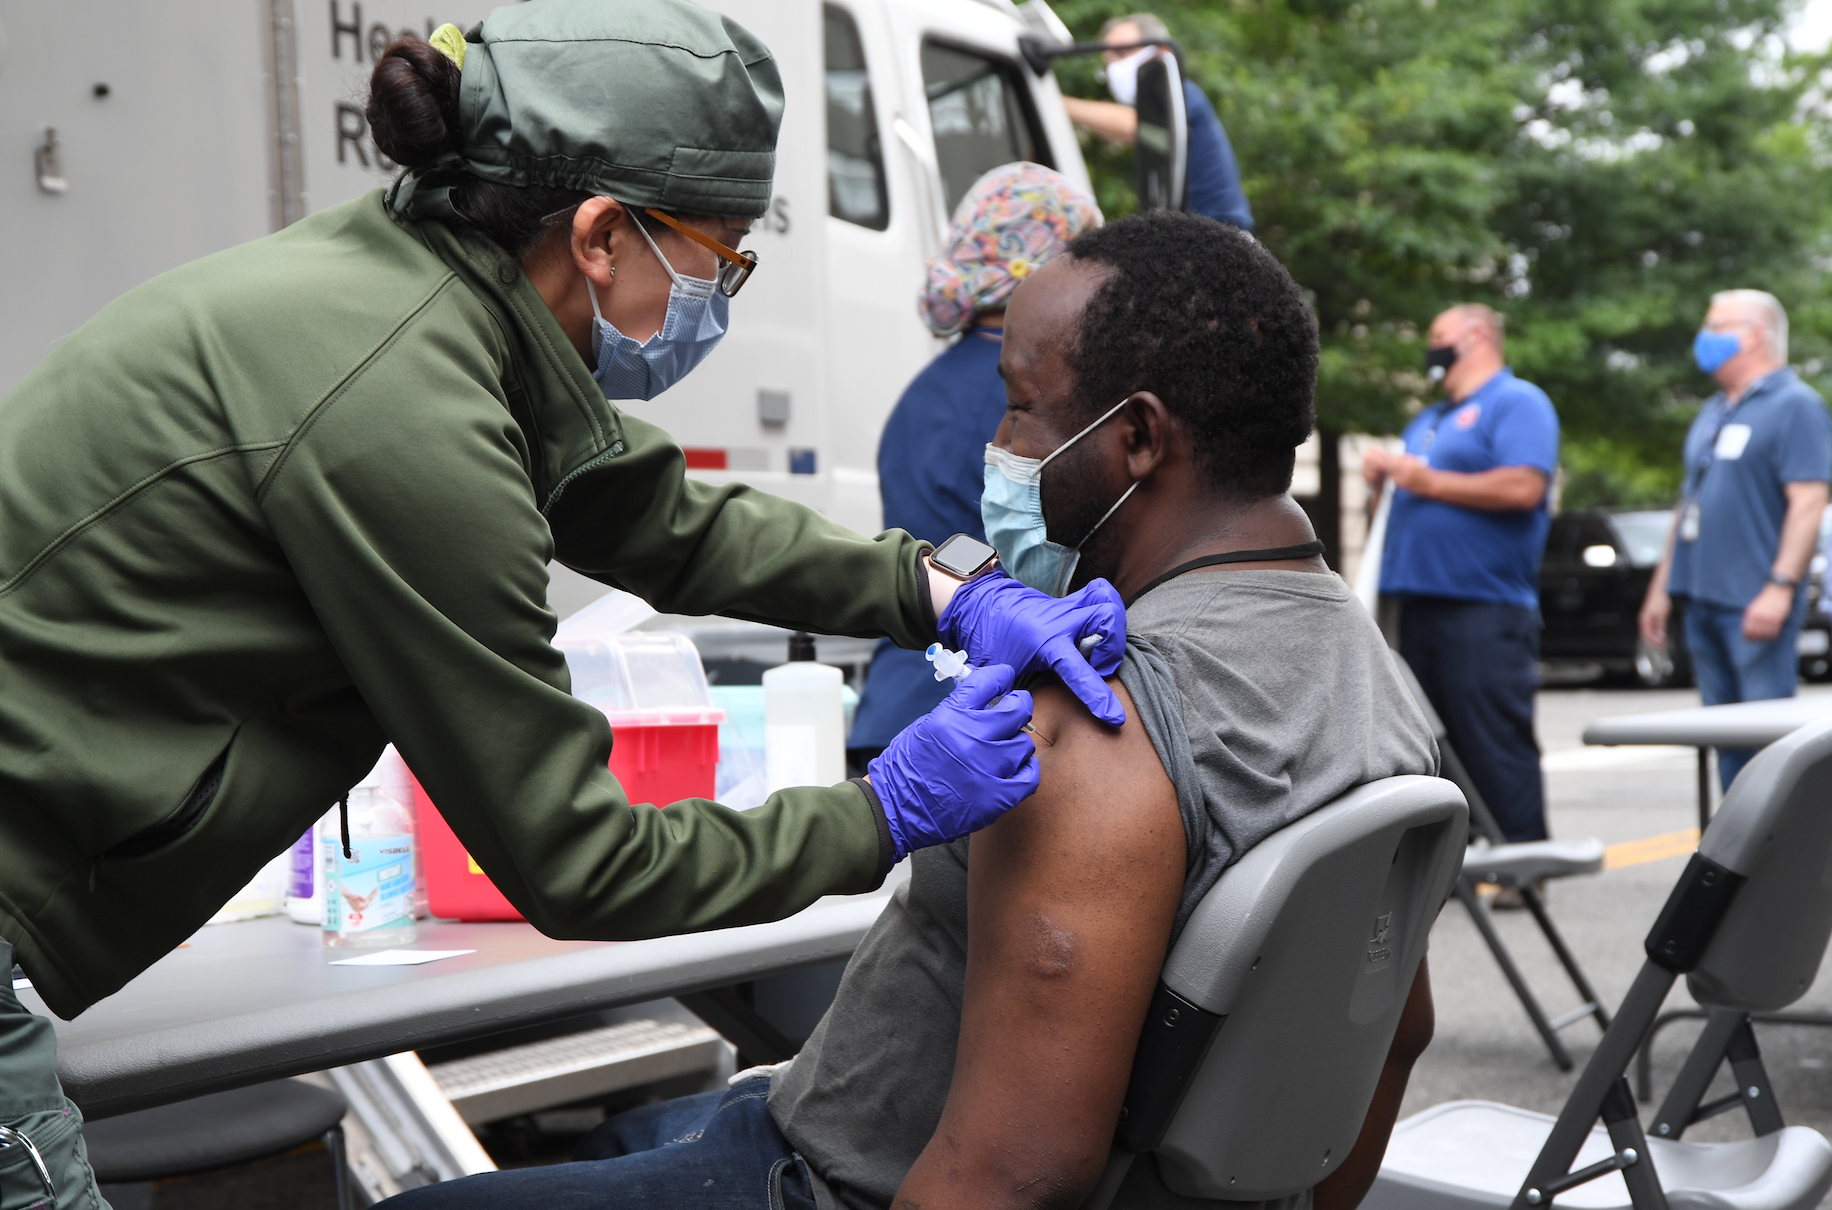 Fourth Mission vaccination event at VACO